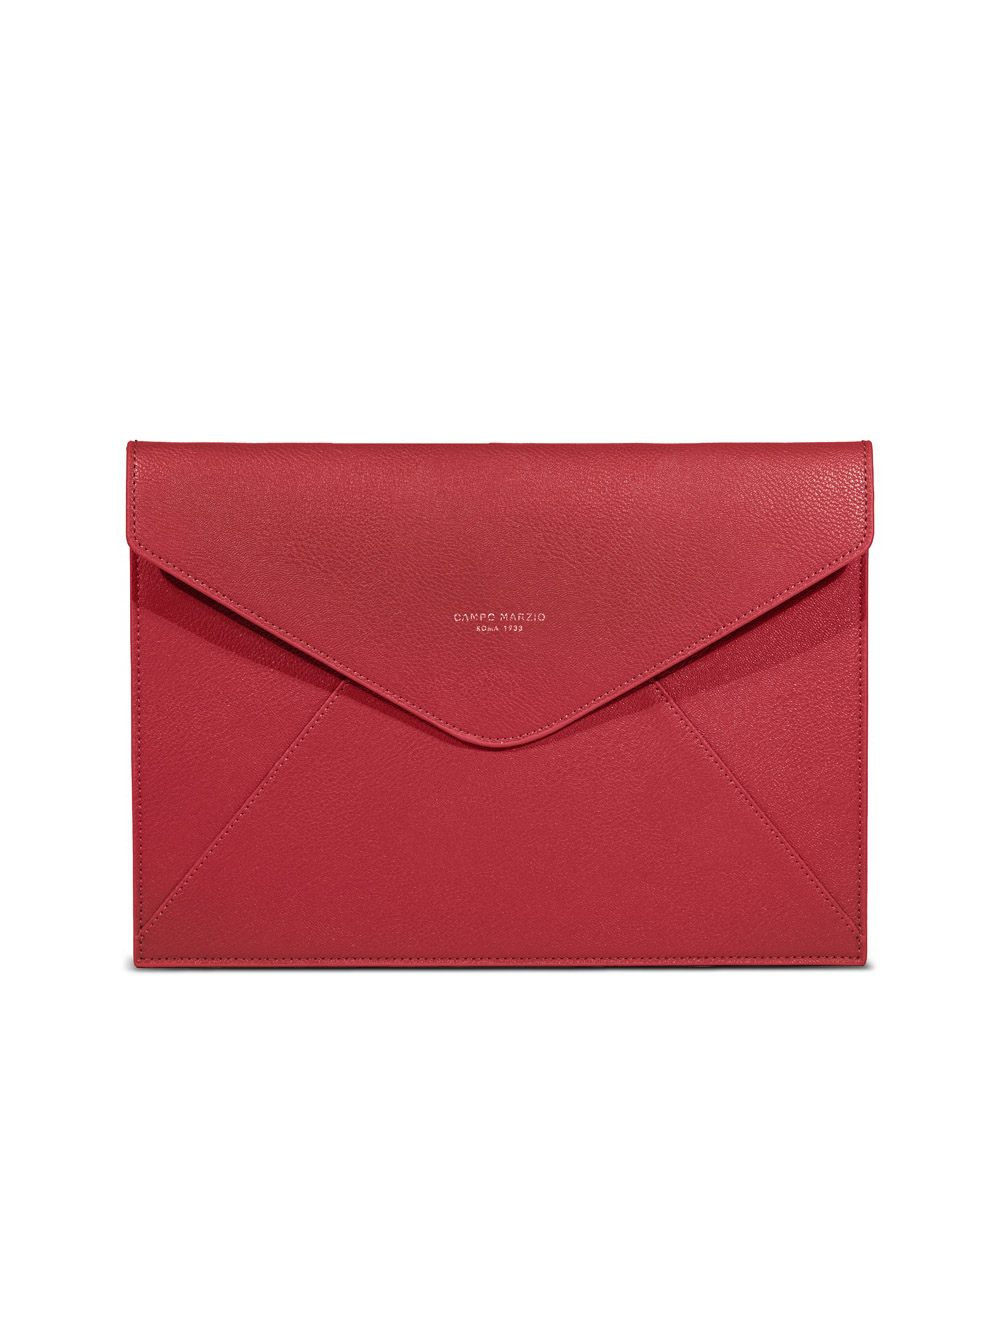 Document Holder A4 Fedor - Cherry Red